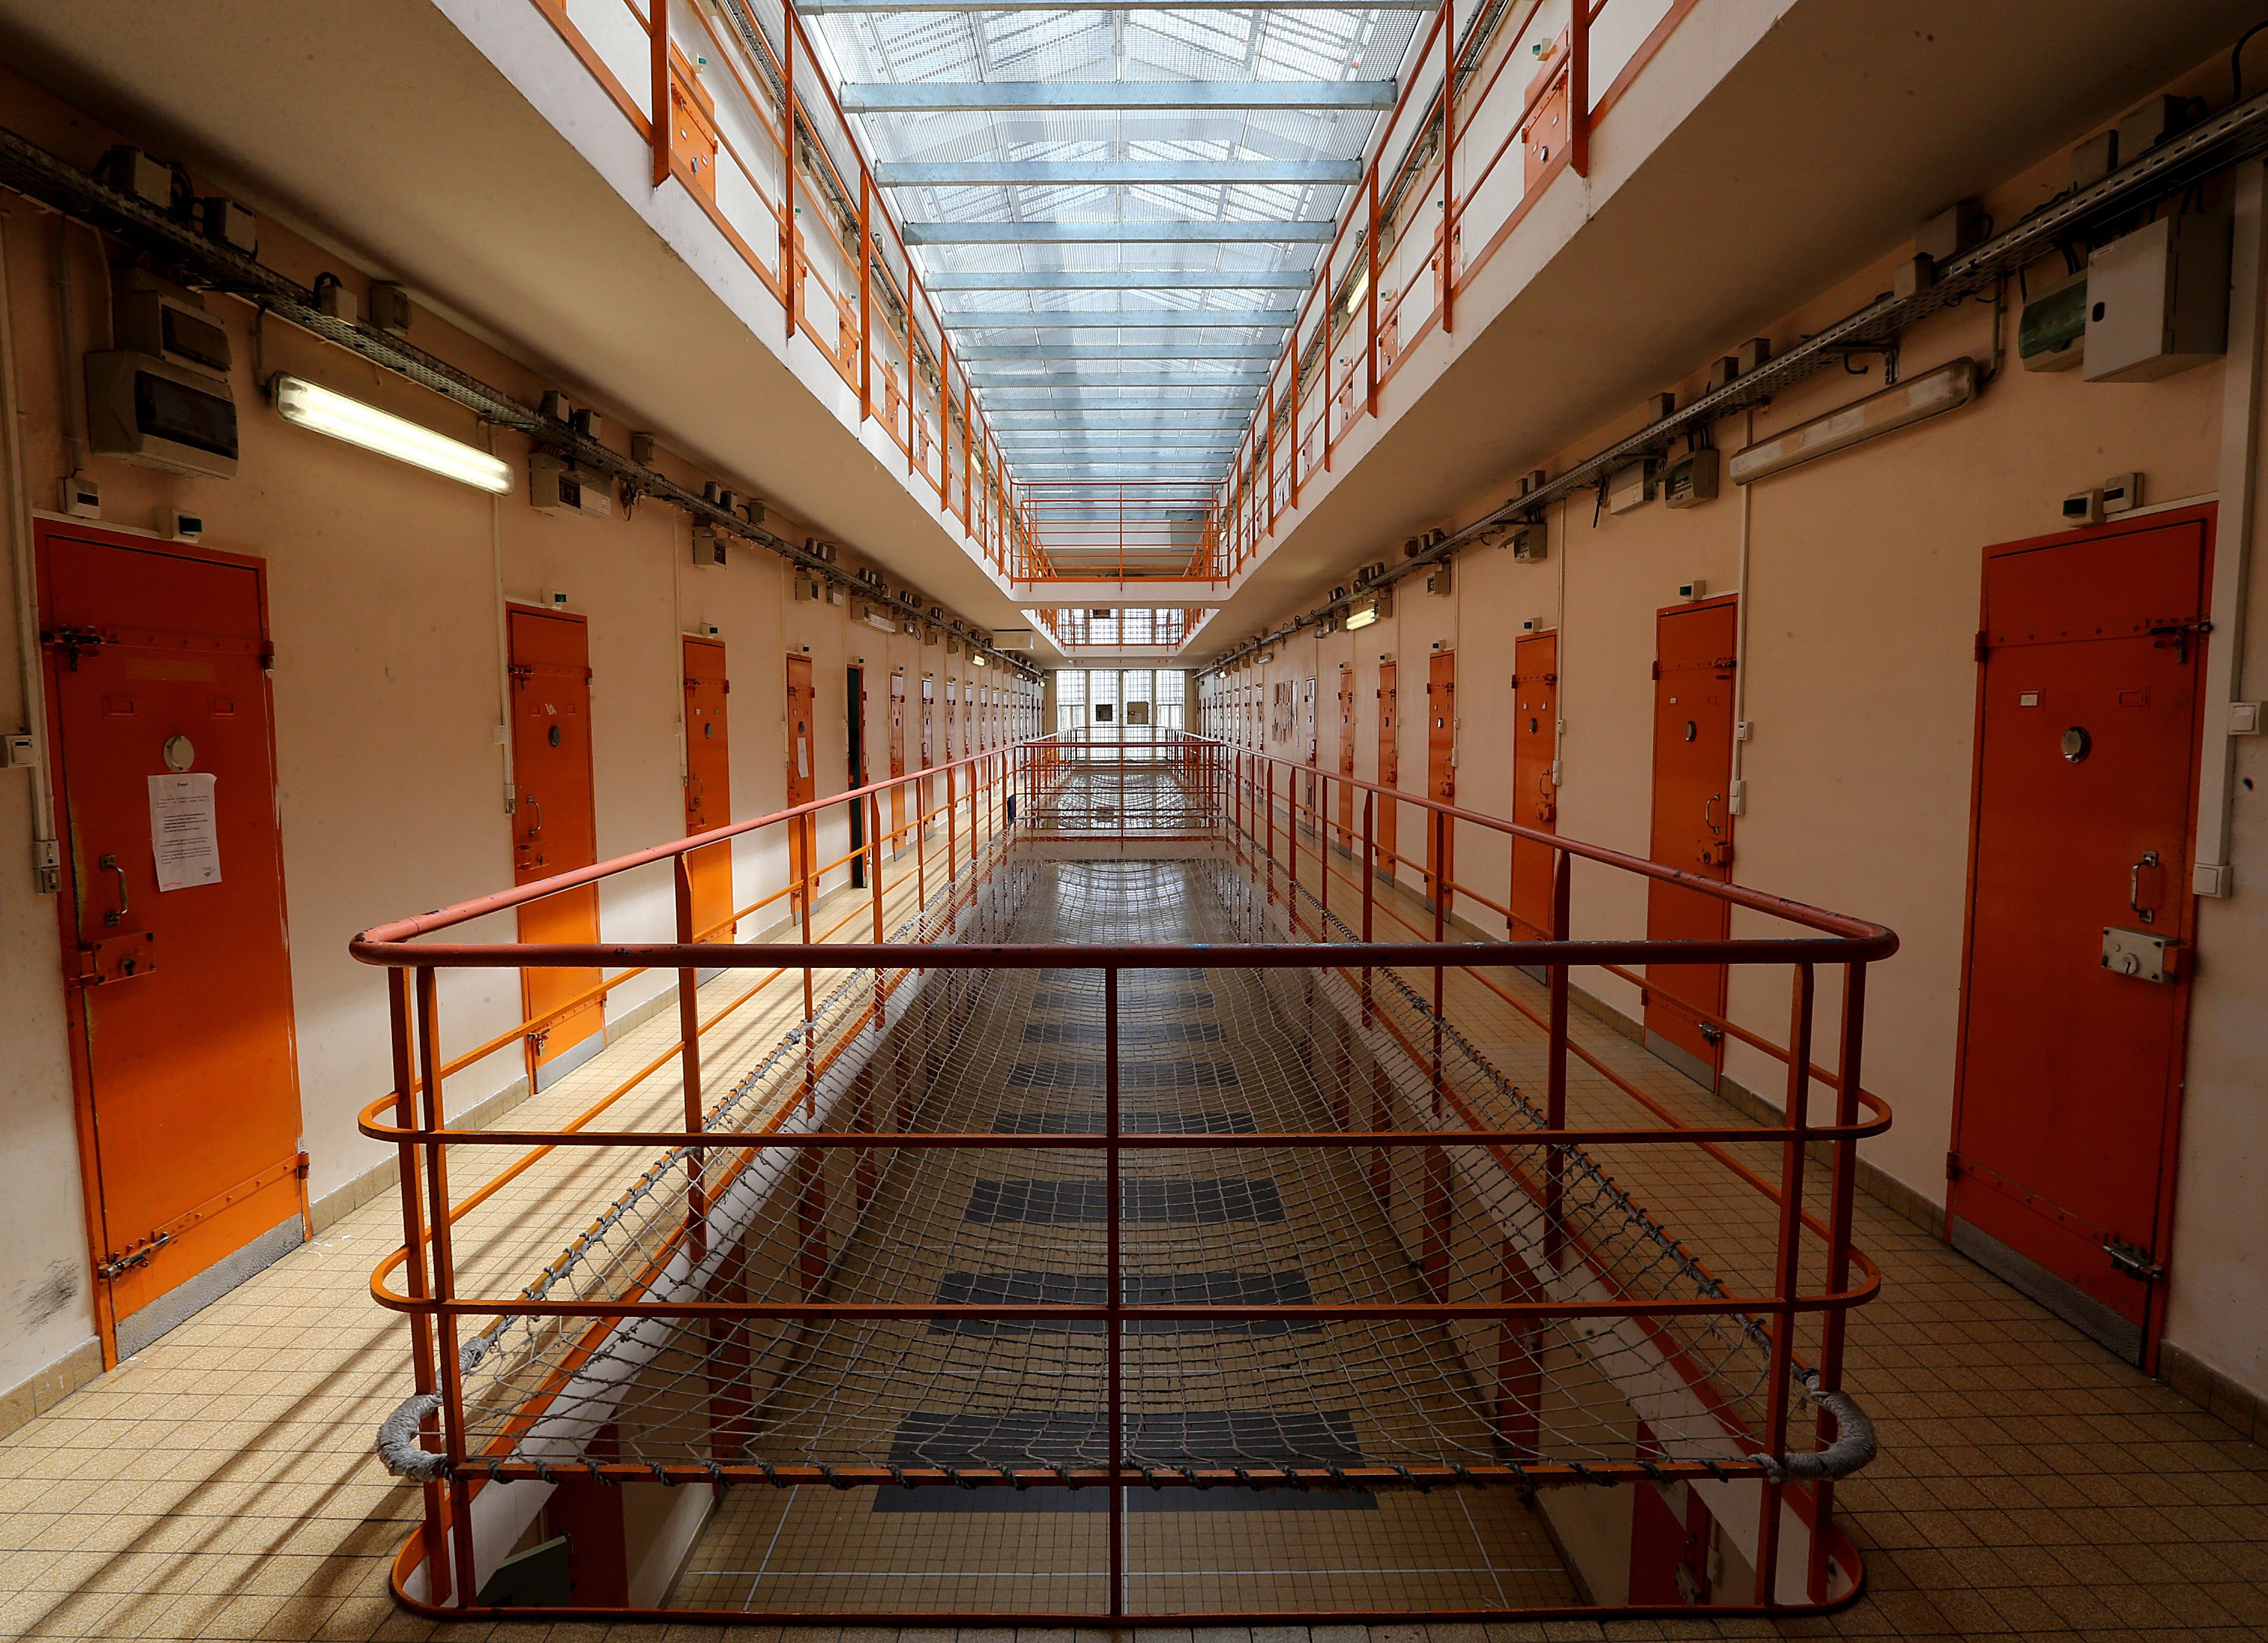 France prison photo - Rikers Island